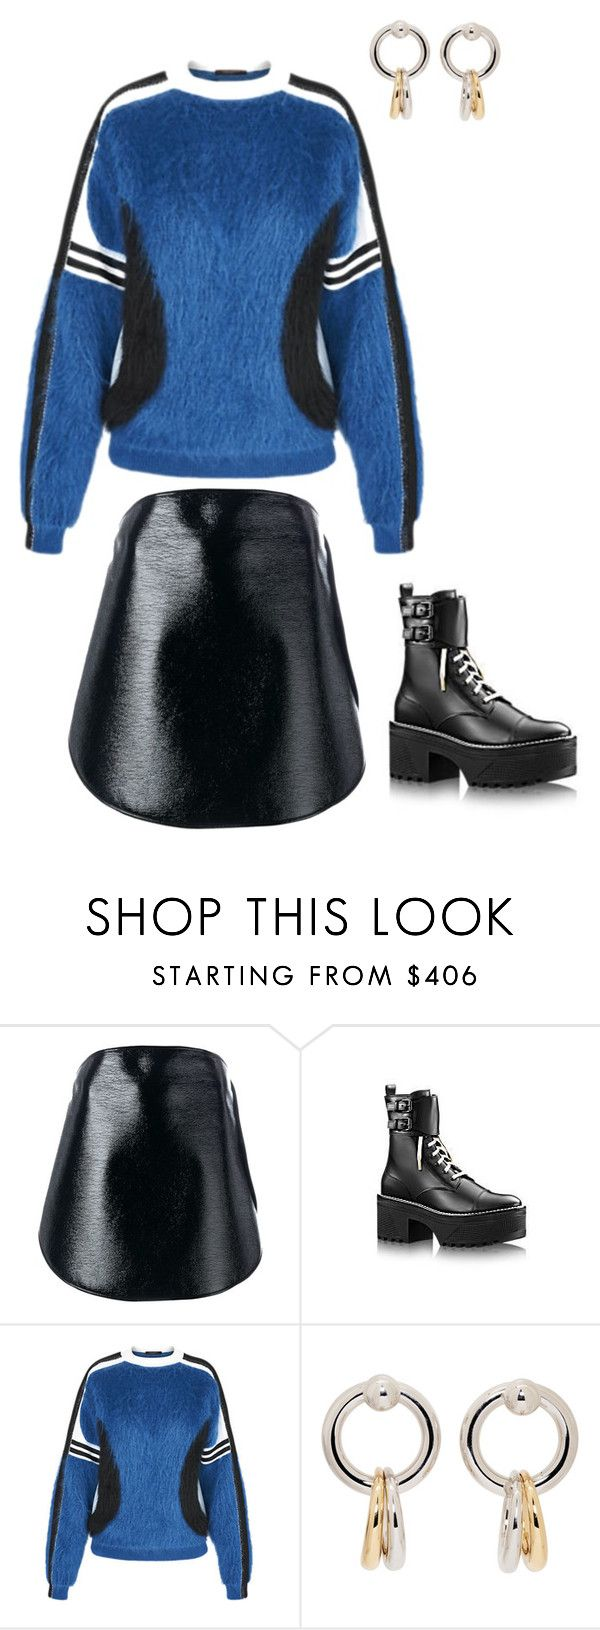 """Martens."" by lucillefourny ❤ liked on Polyvore featuring Courrèges, Louis Vuitton and Alexander Wang"